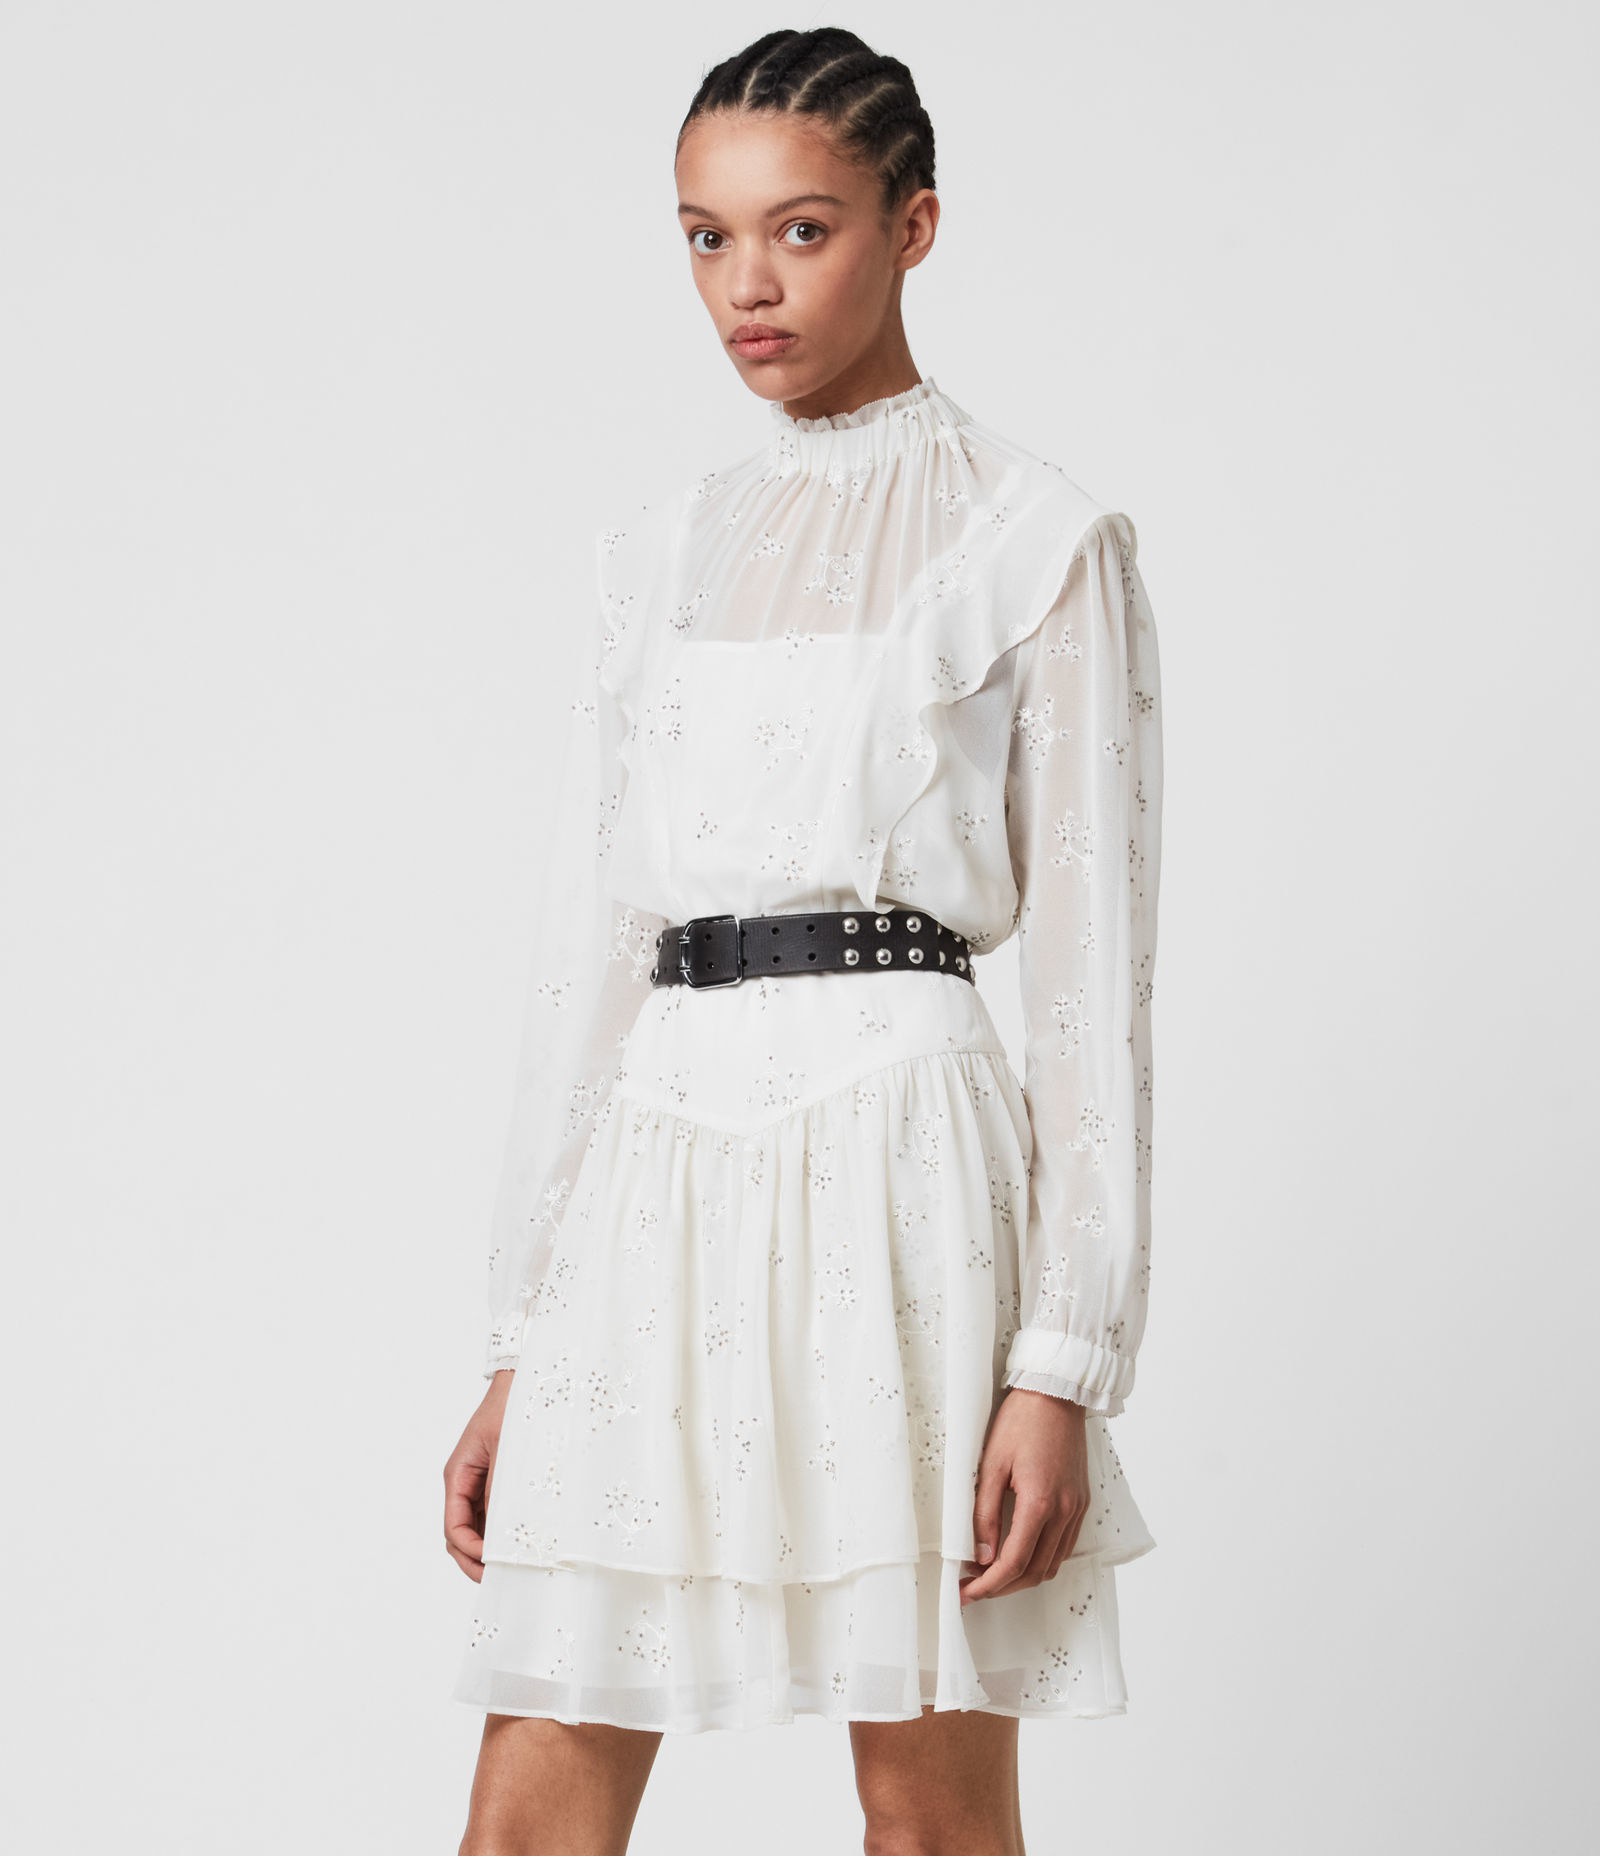 model wearing white long sleeve eyelet mini dress with gathered high neck, ruffles at chest, ruffles at hem with a Victorian style